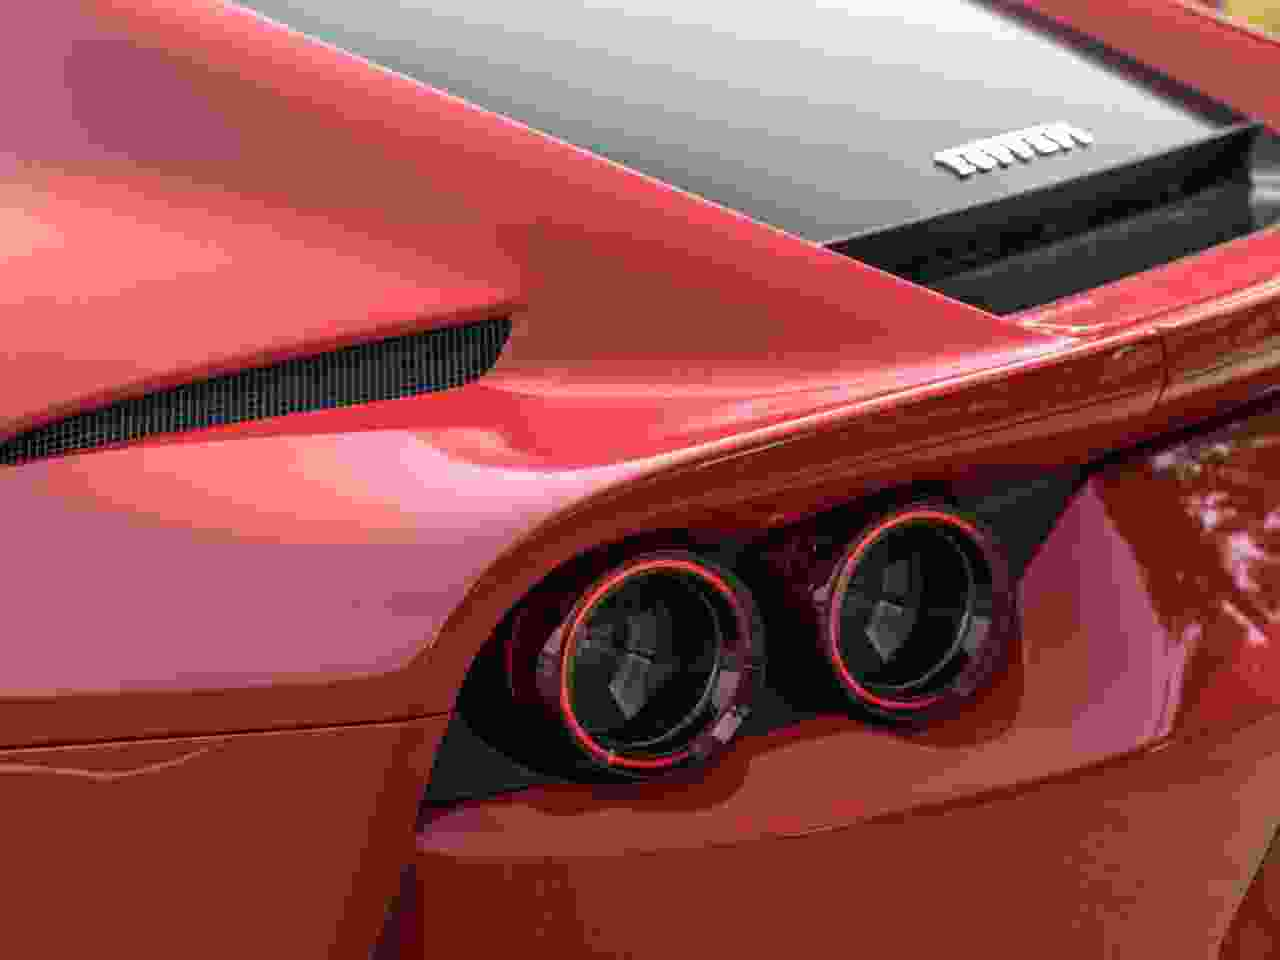 812 Superfast detail